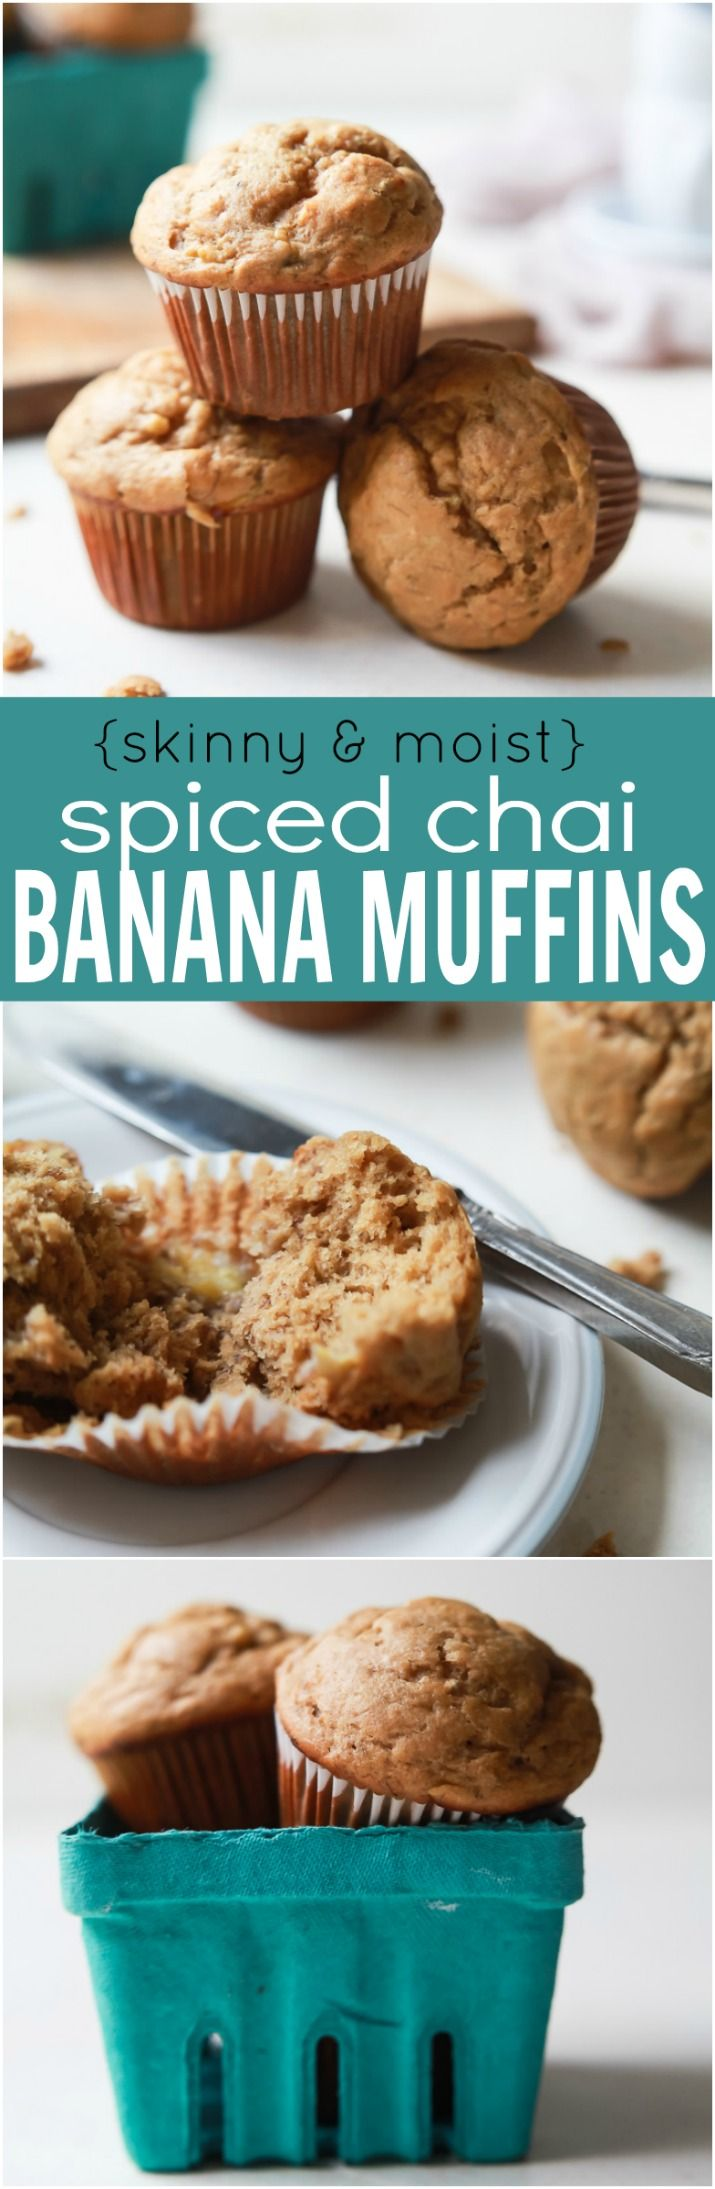 Spiced Chai Banana Muffins with a secret ingredient for an extra nutritional boost. These muffins are butter free, refined sugar free, crazy moist, and absolutely delicious. You and your kids will fall in love!   joyfulhealthyeats.com